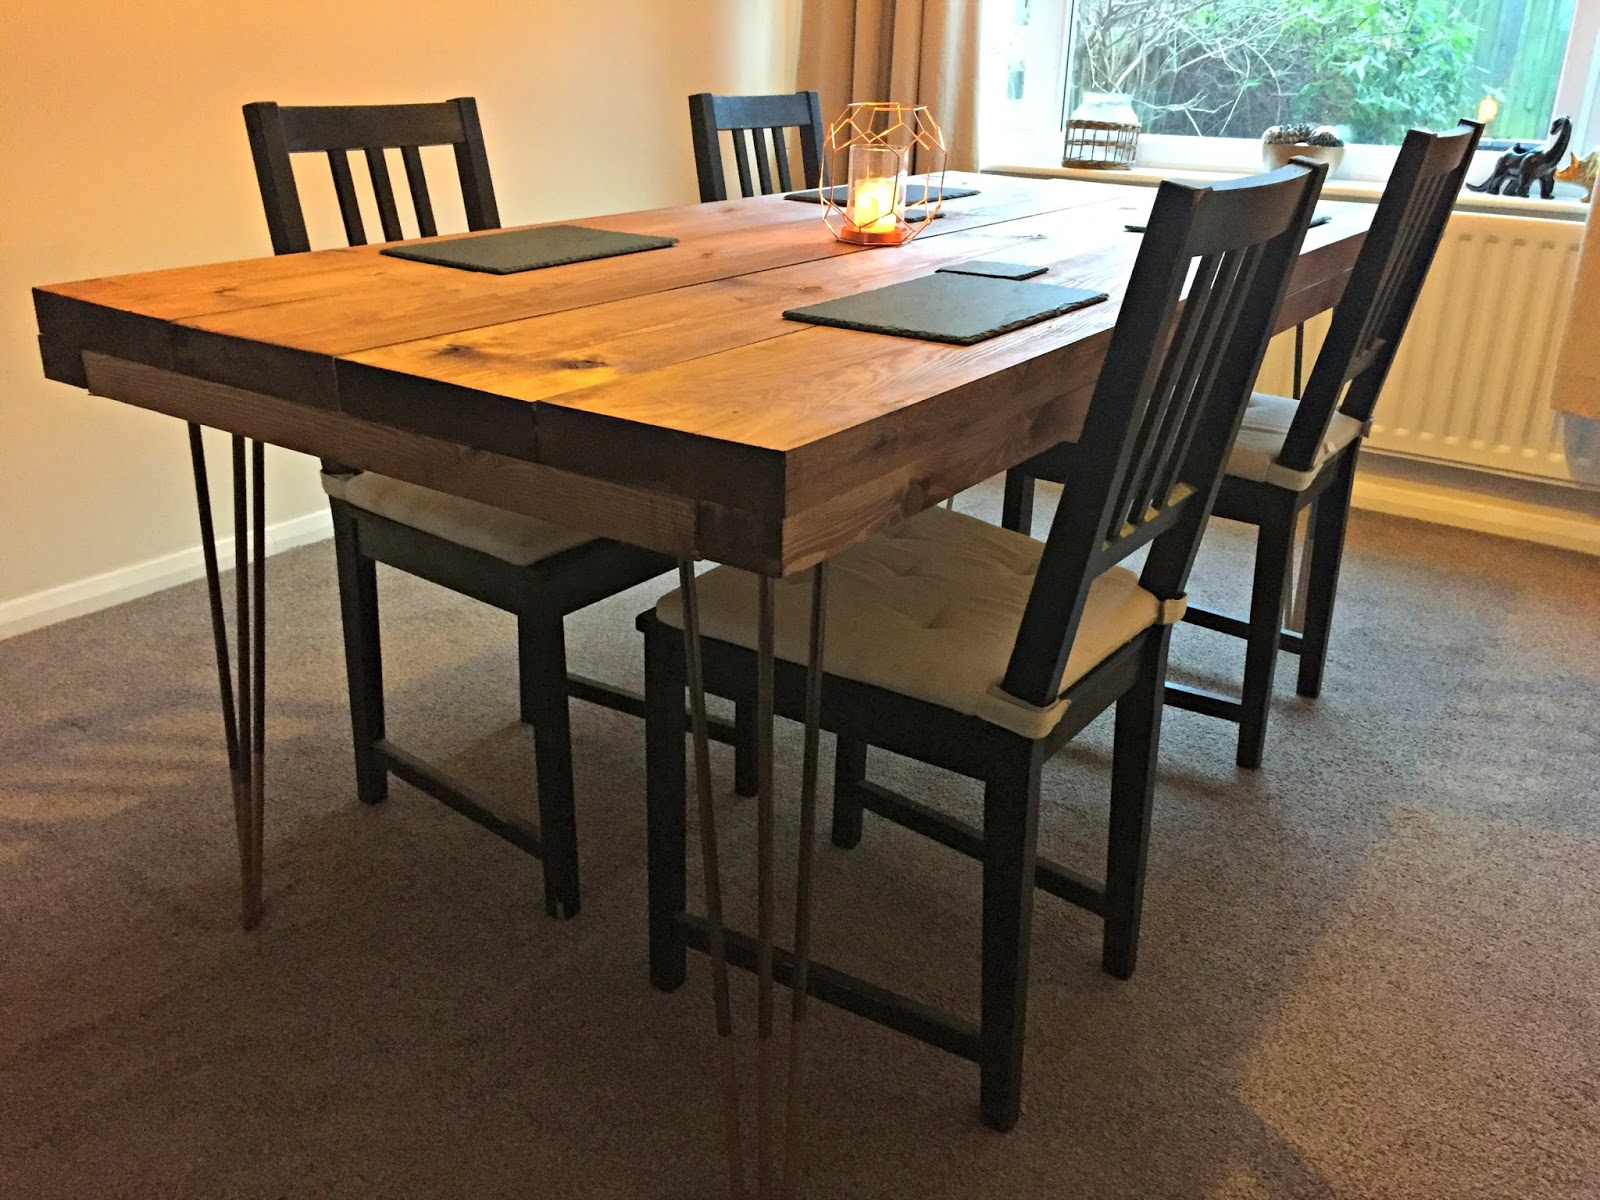 Diy Tutorial Rustic Dining Table With Hairpin Legs By The Leg Company